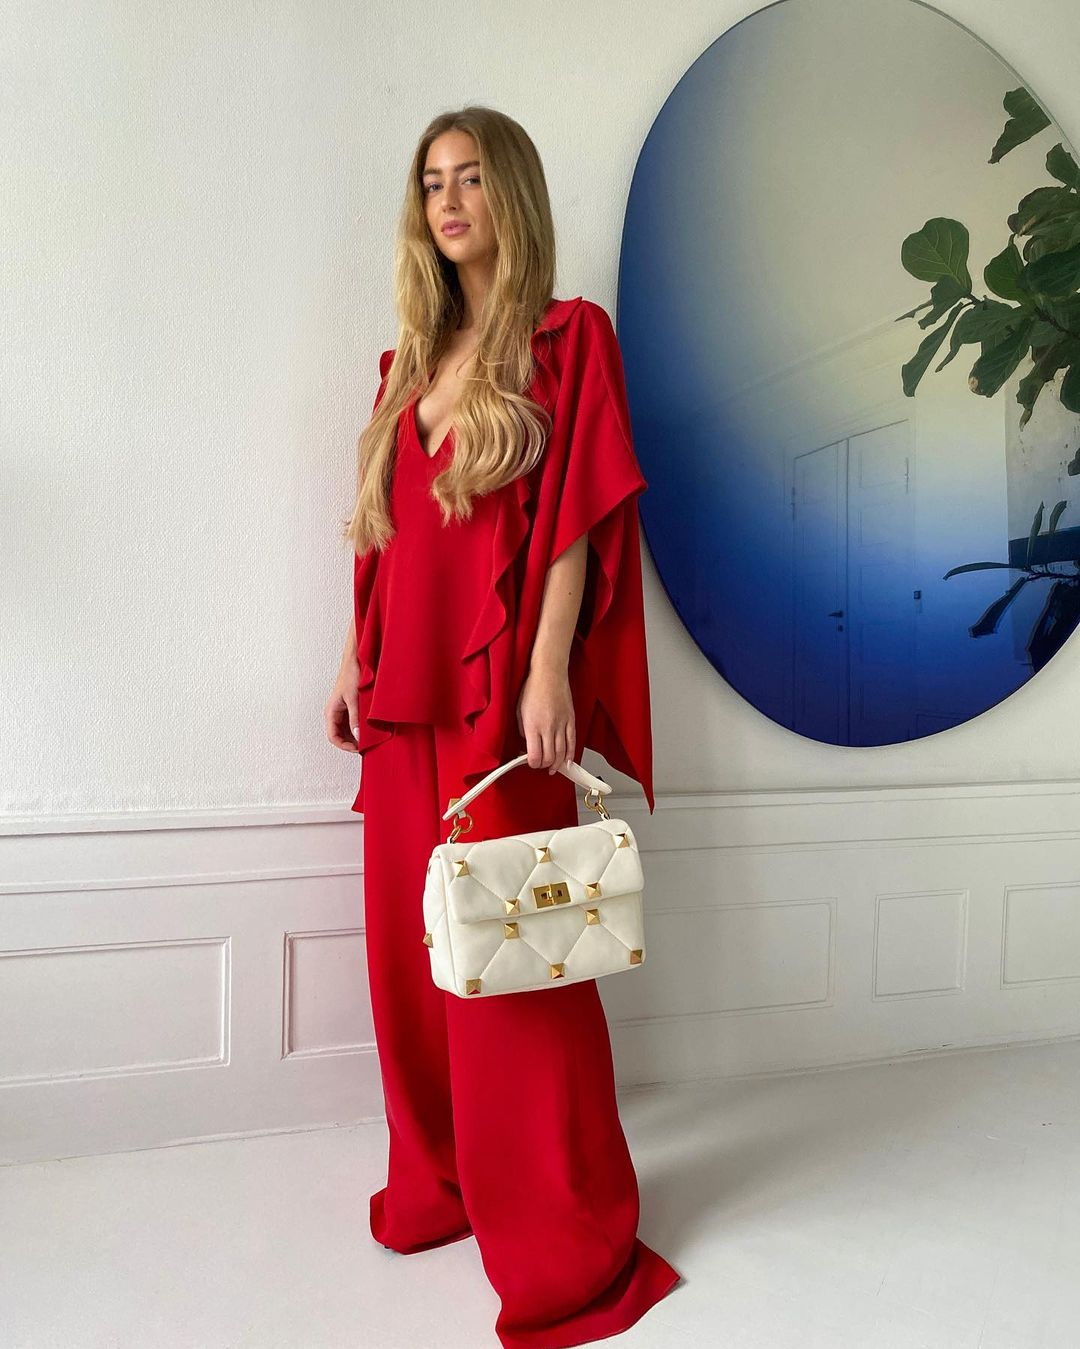 emili-sindlev-valentino-red-outfit-instagram